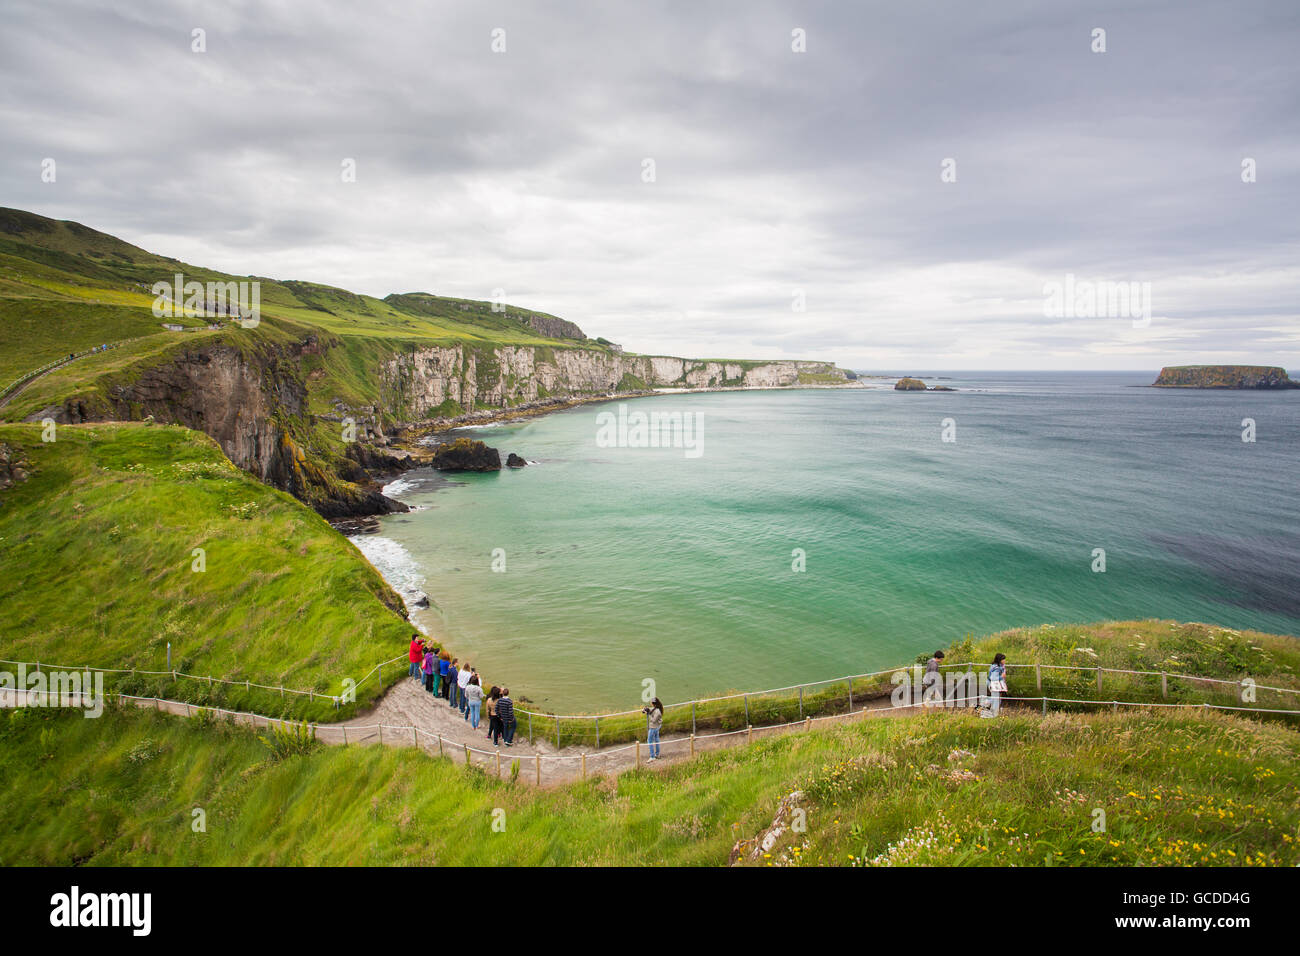 The path leading to the Carrick-a-Rede rope bridge in Antrim, Northern Ireland - Stock Image